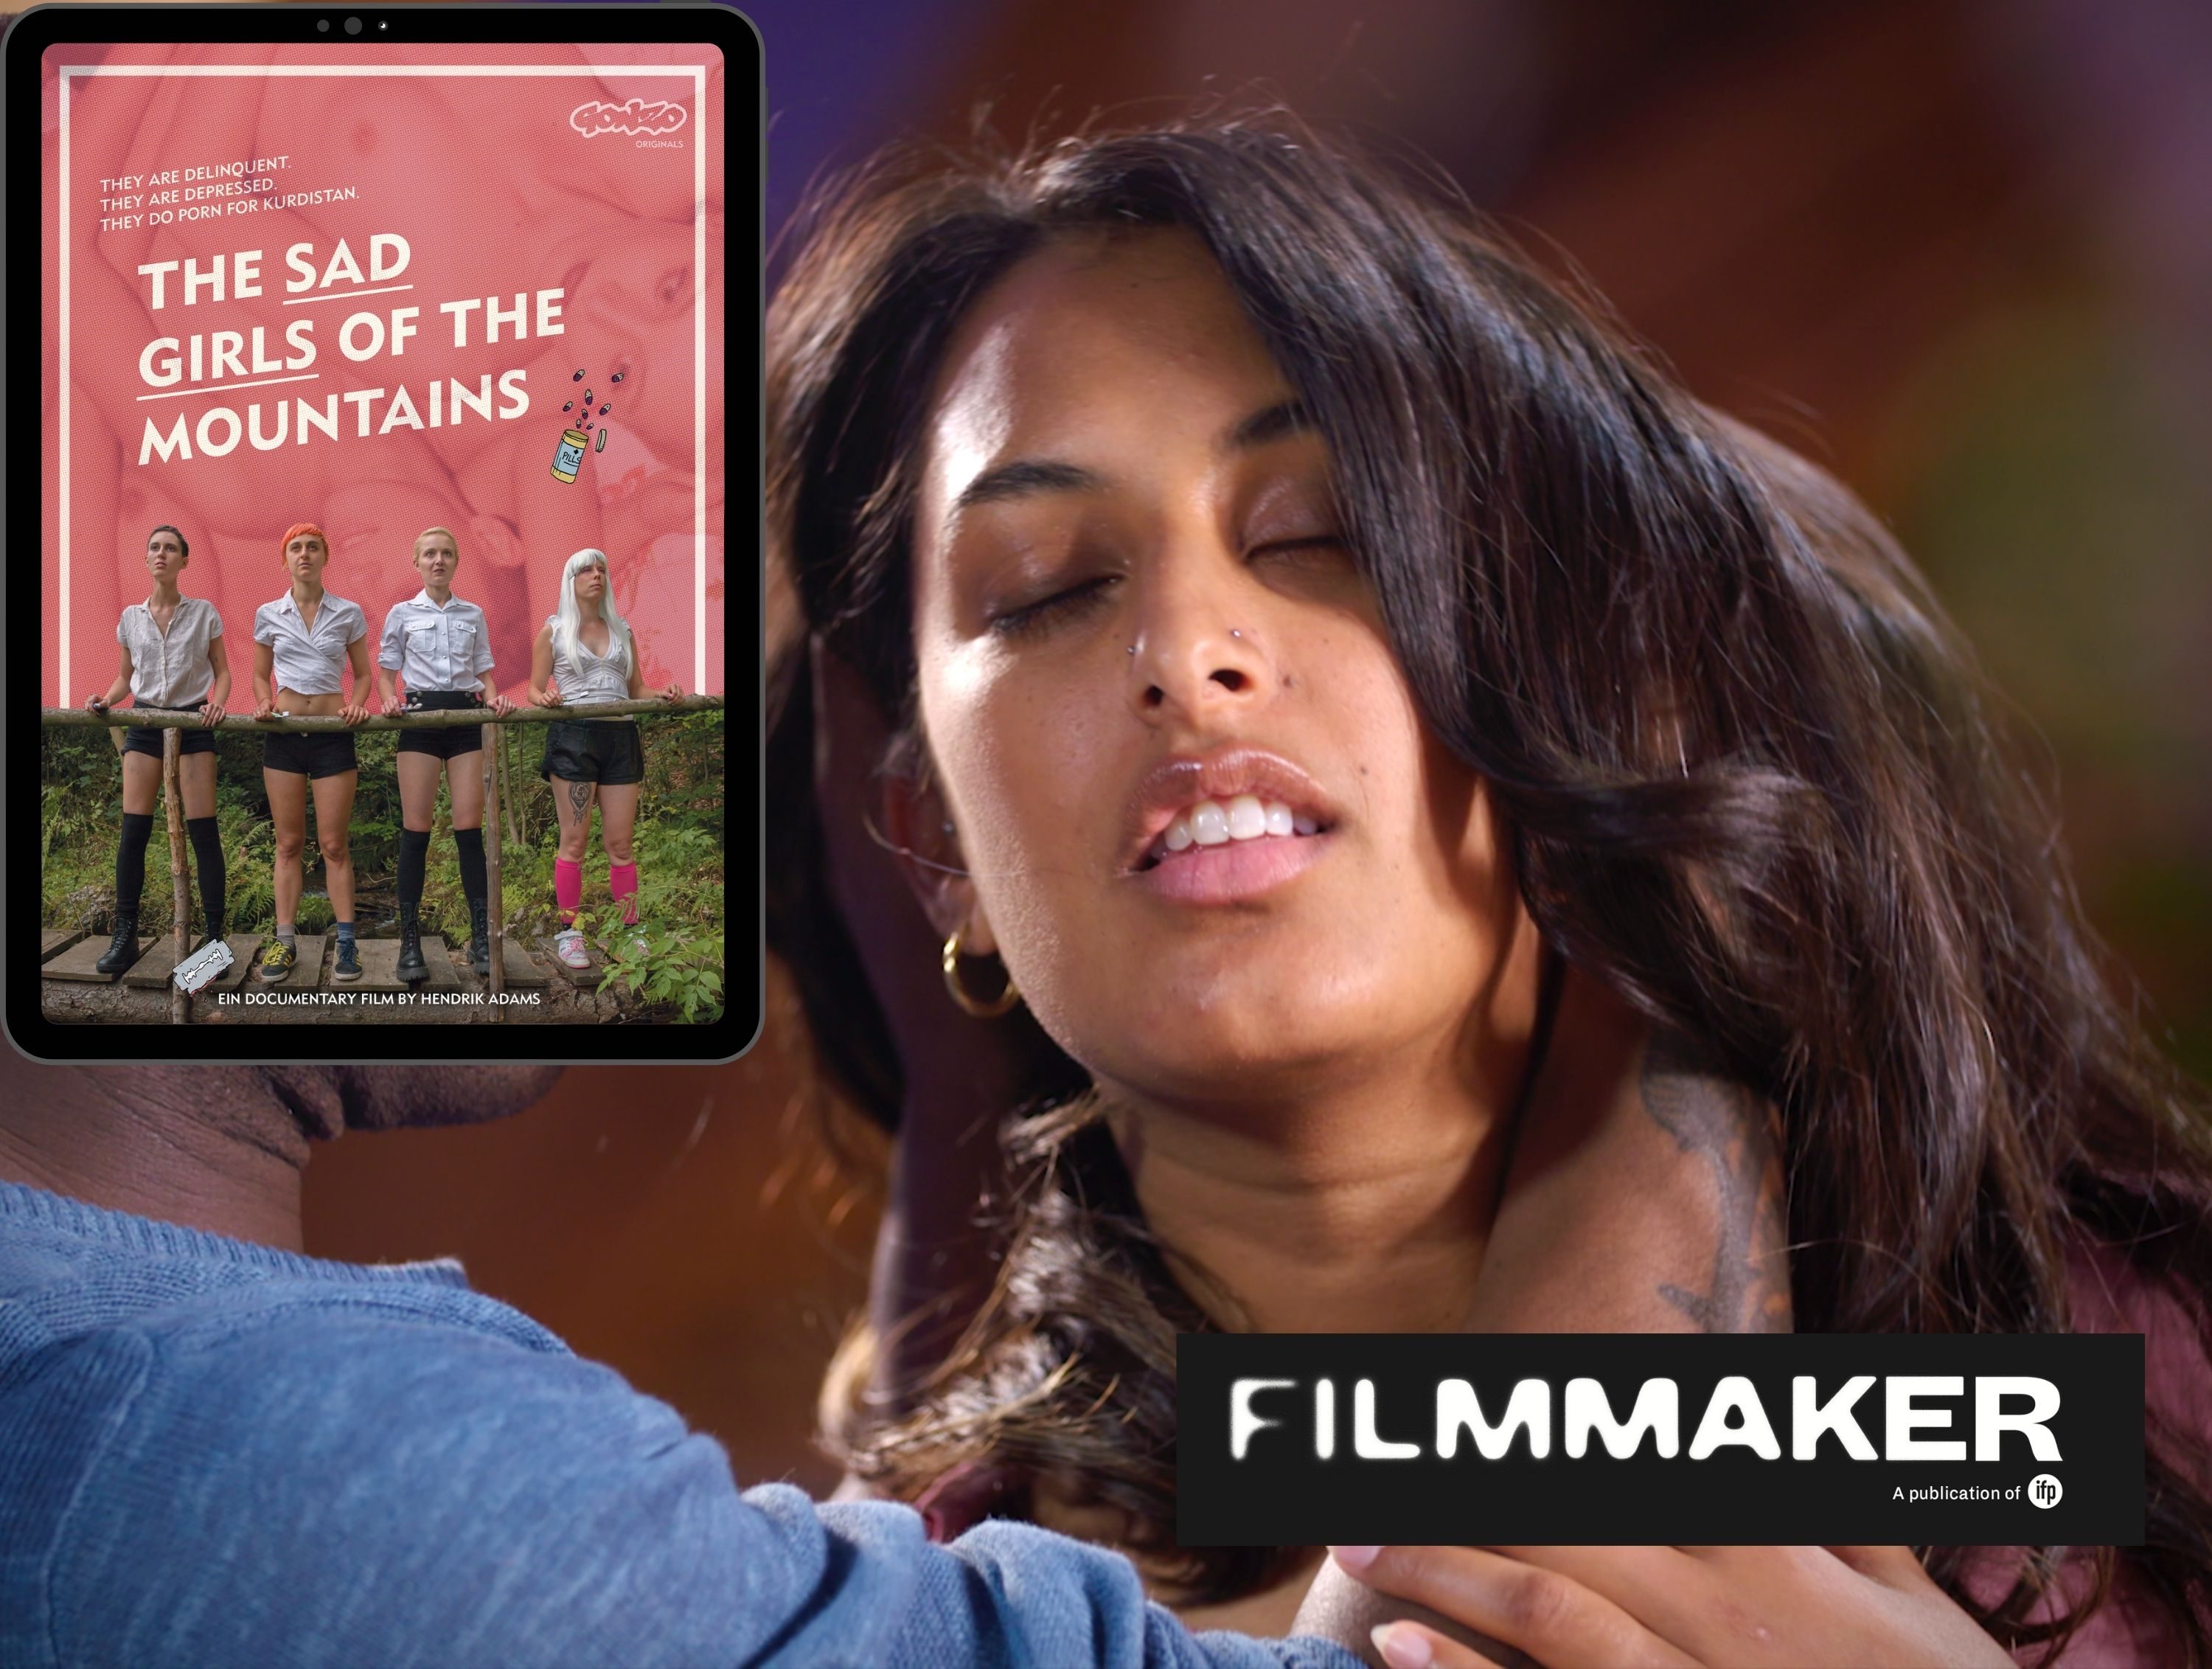 """Filmmaker Magazine posts """"The New Nostalgia of Touch: The Best Adult Erotic Filmmakers to Watch in 2021"""". Image of Kali Sudhra in Wild Card (Jennifer Lyon Bell, Blue Artichoke Films) and poster for """"The Sad Girls of The Mountains (Candy Flip and Theo Meow.)"""